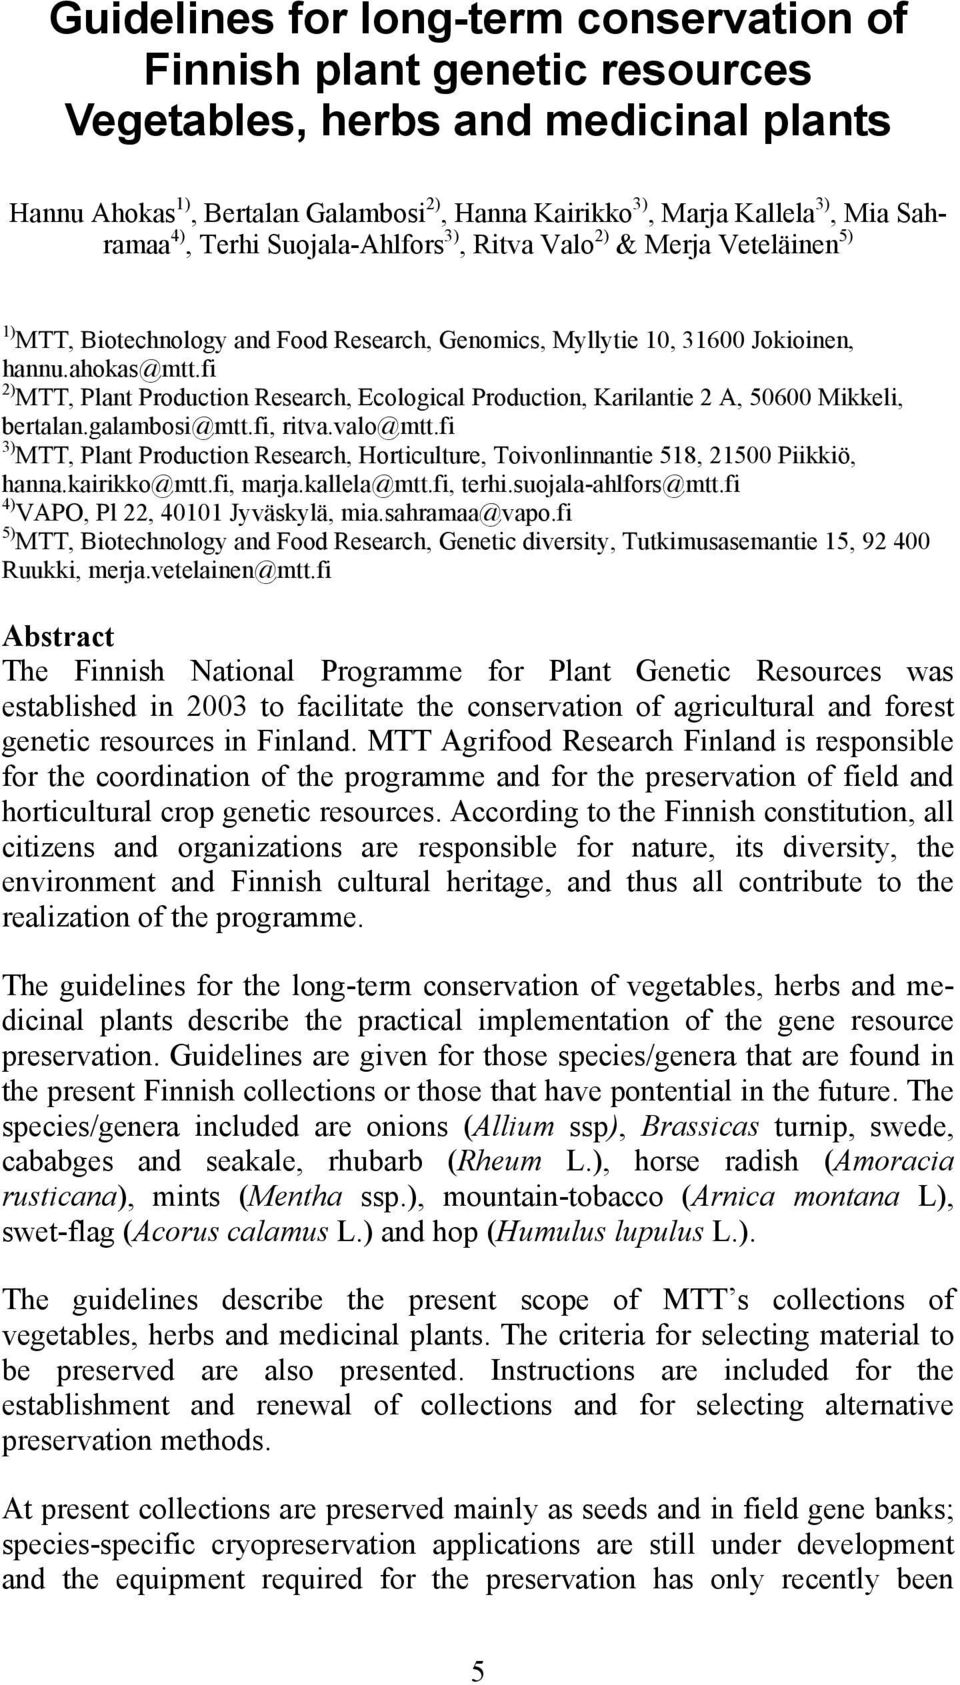 fi 2) MTT, Plant Production Research, Ecological Production, Karilantie 2 A, 50600 Mikkeli, bertalan.galambosi@mtt.fi, ritva.valo@mtt.